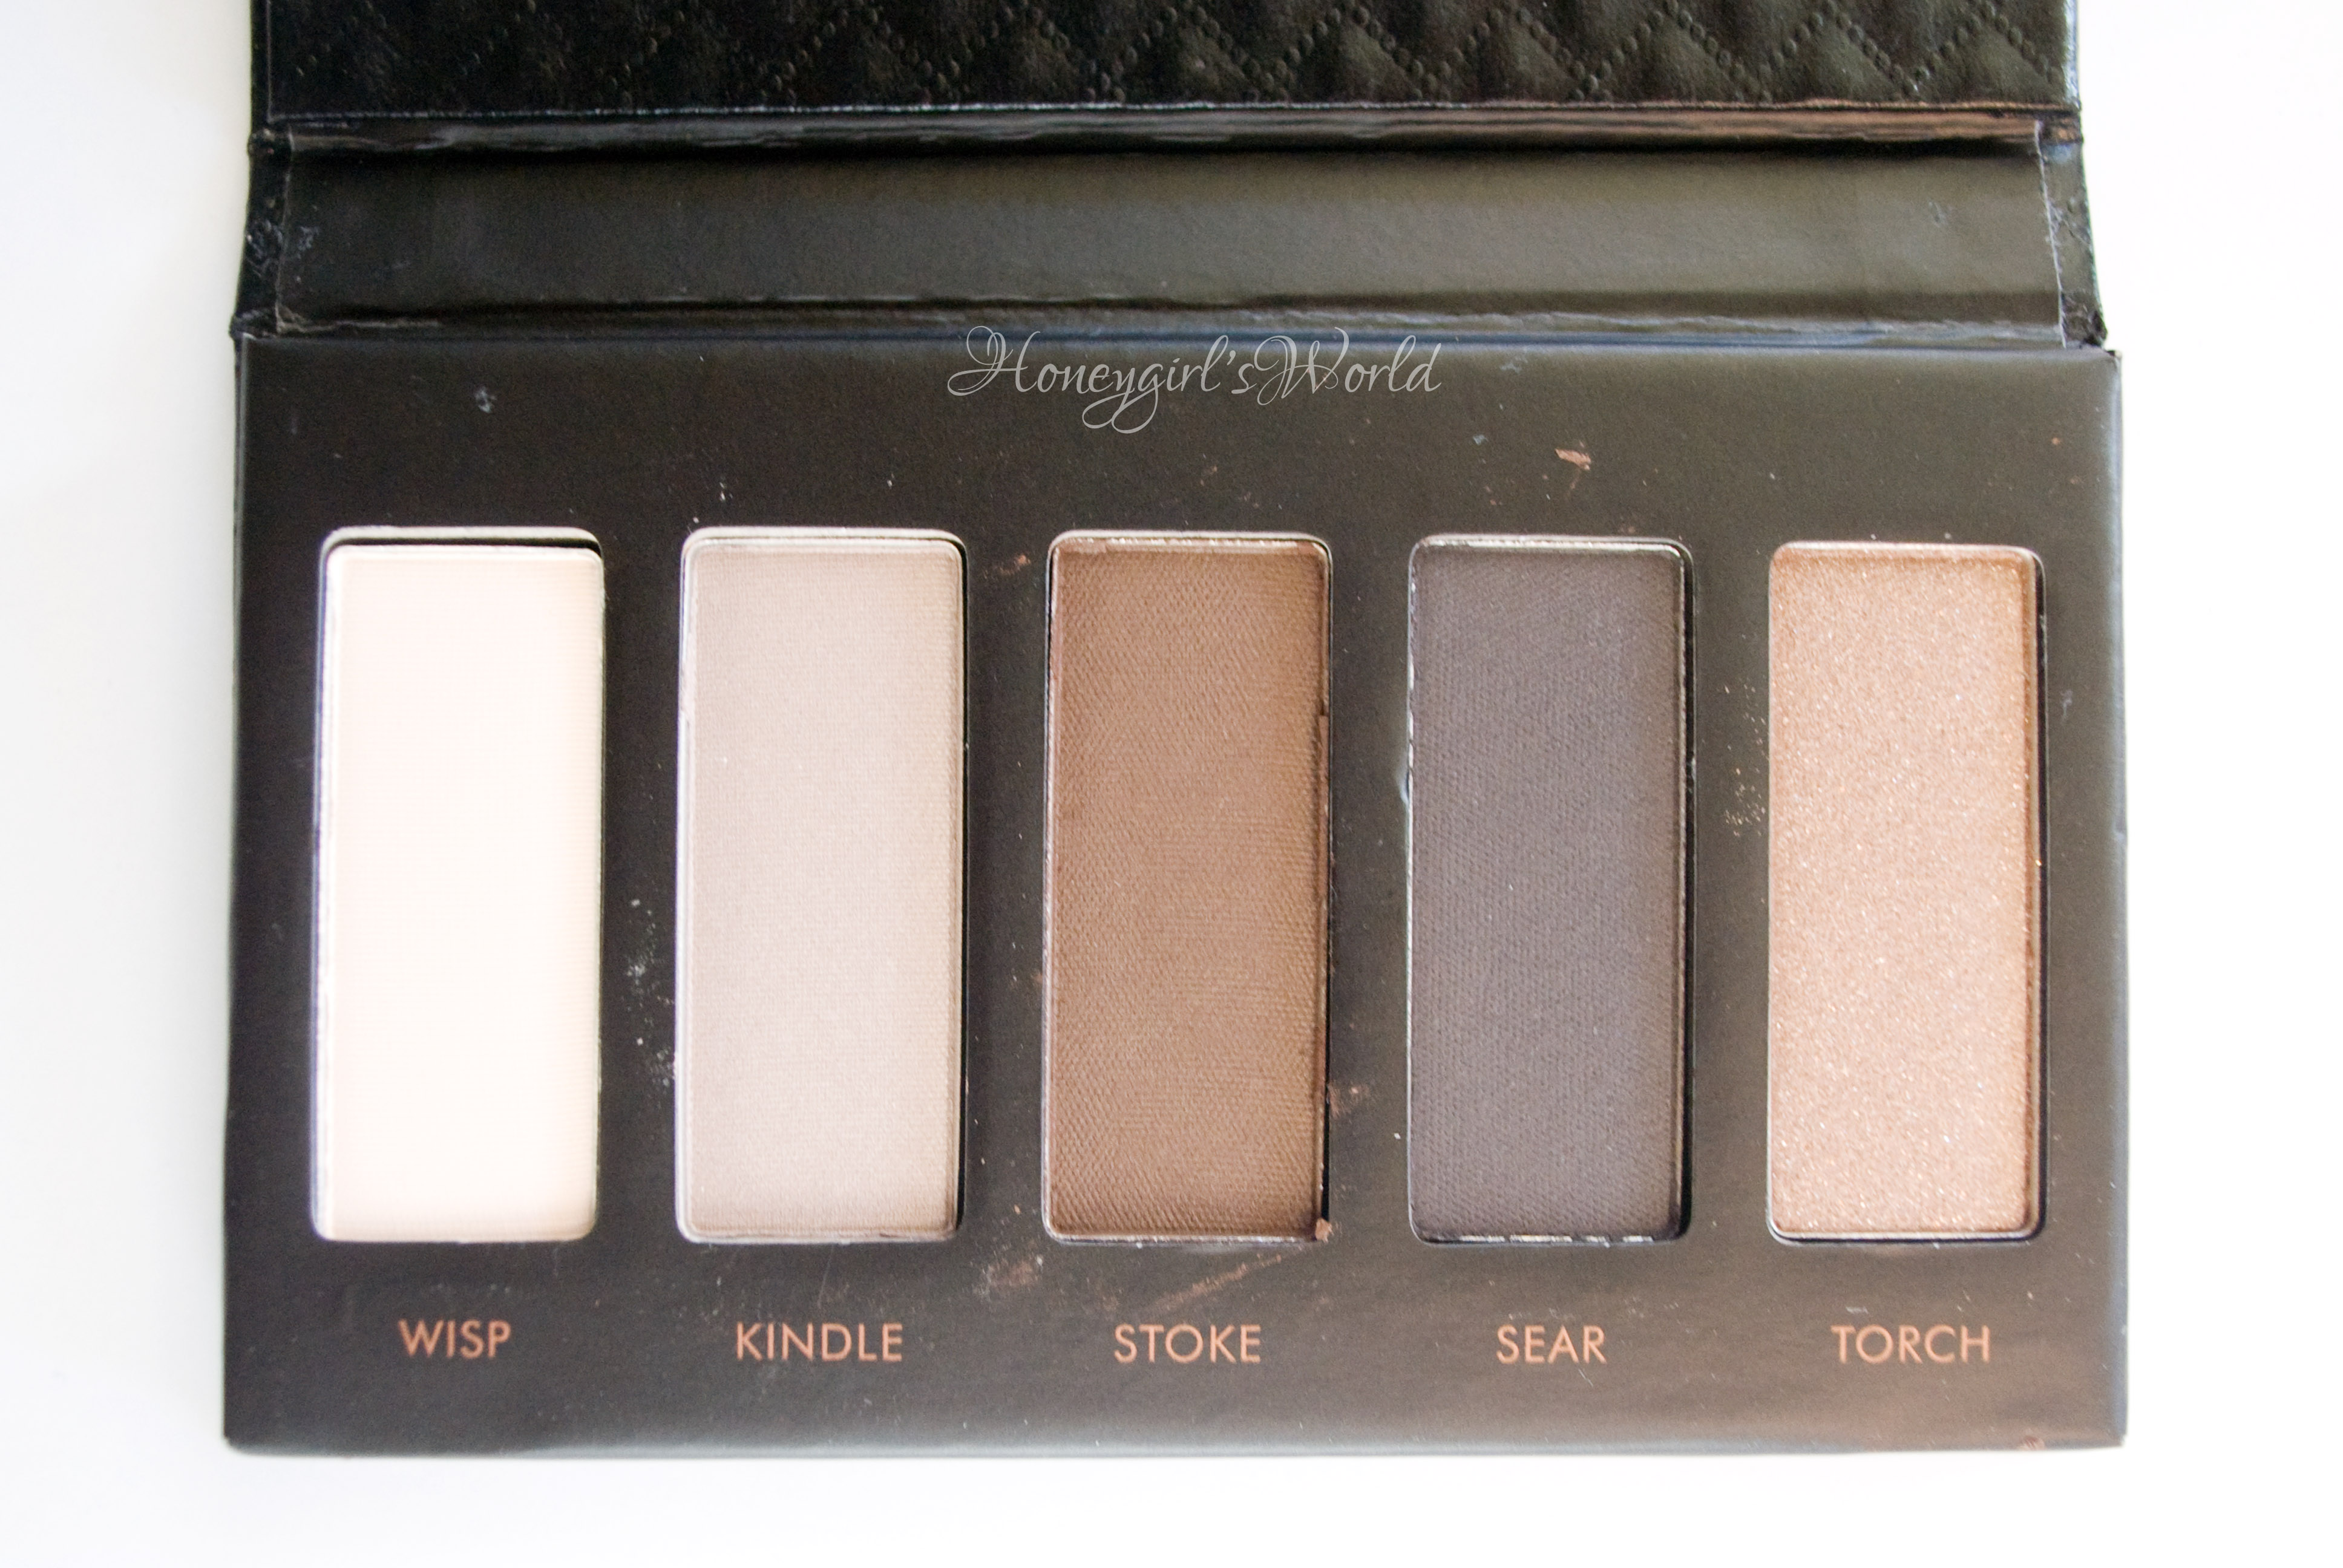 Borghese Eclissare Color Eclipse Five Shades of Torrid Eye Shadow Palette